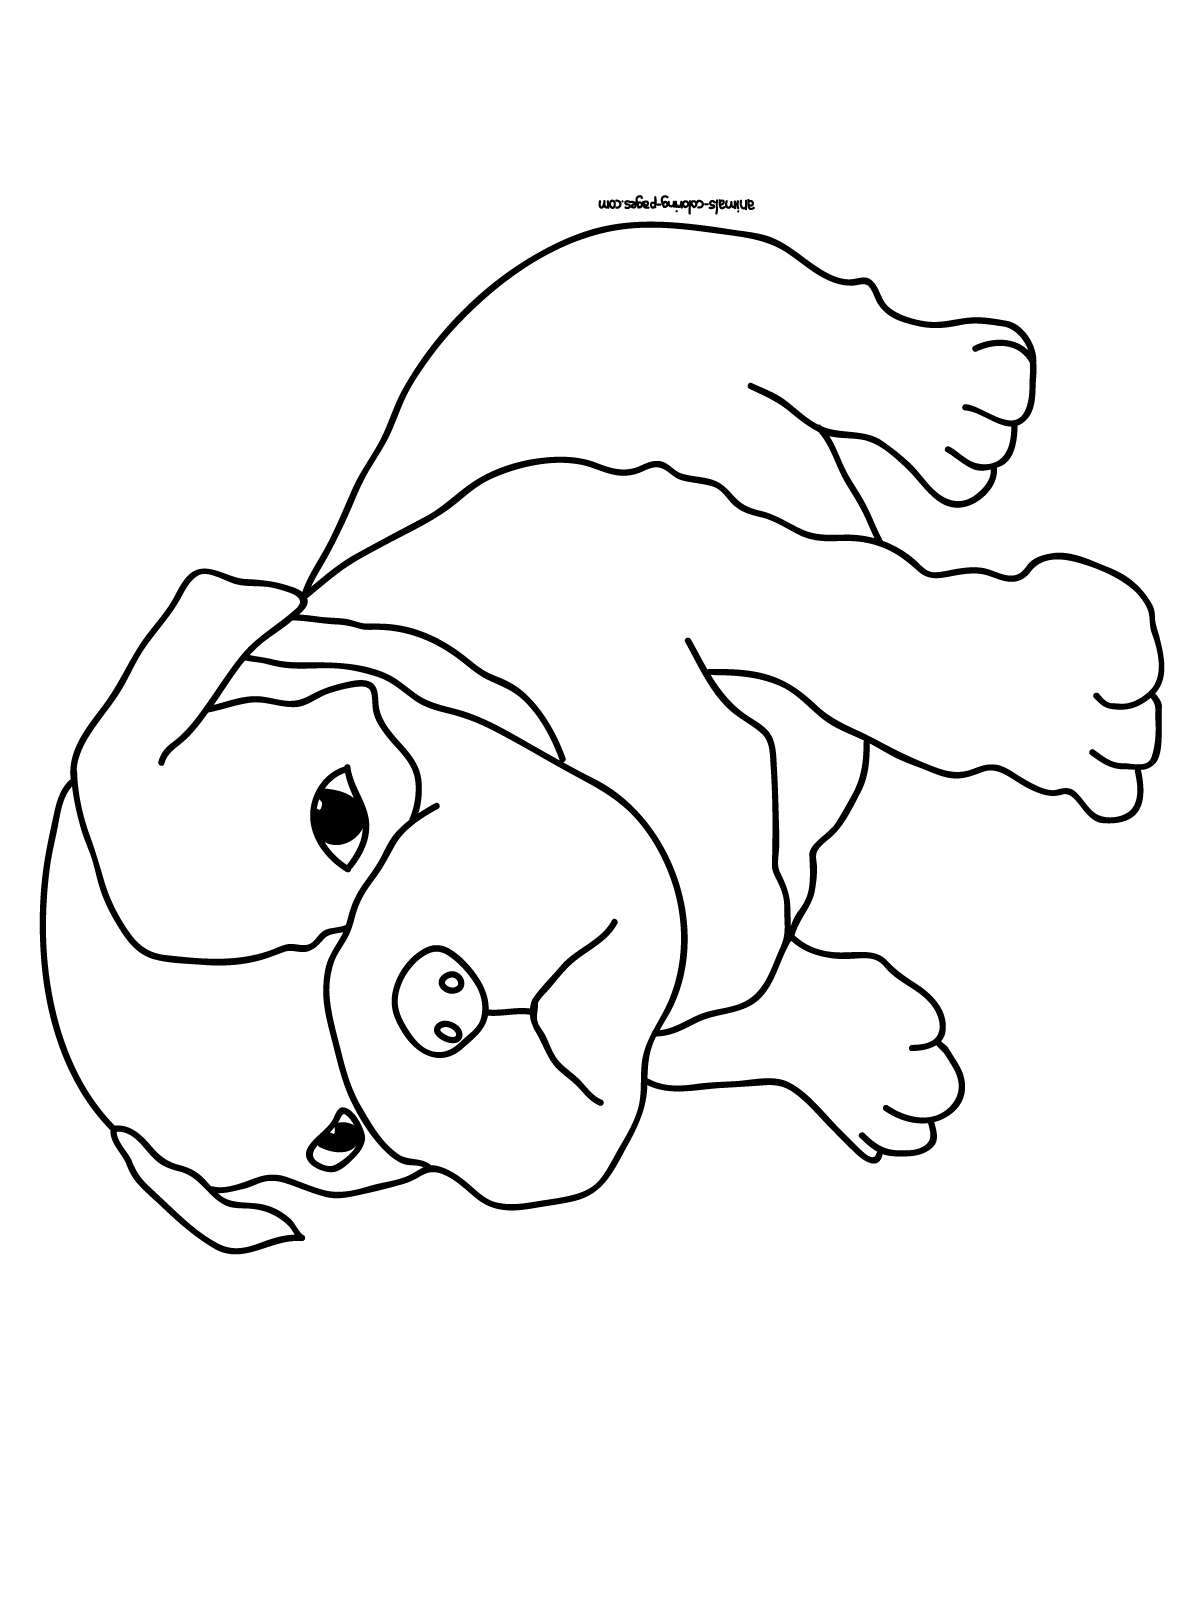 Dog Coloring Pages 2019 Best Cool Funny